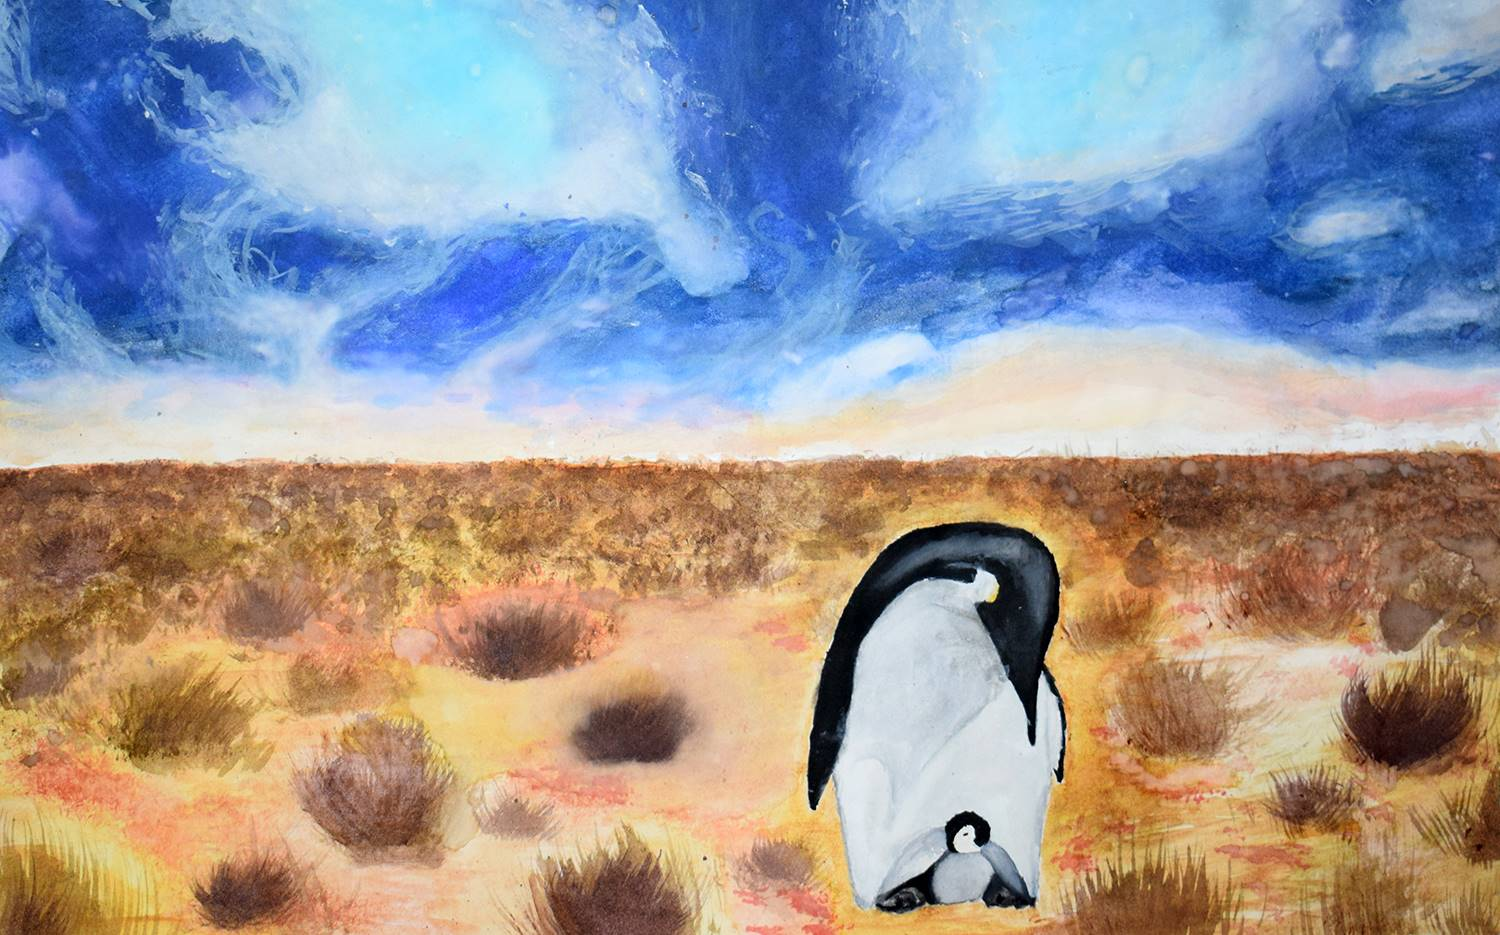 A father penguin with its baby on its feet standing in the dessert.